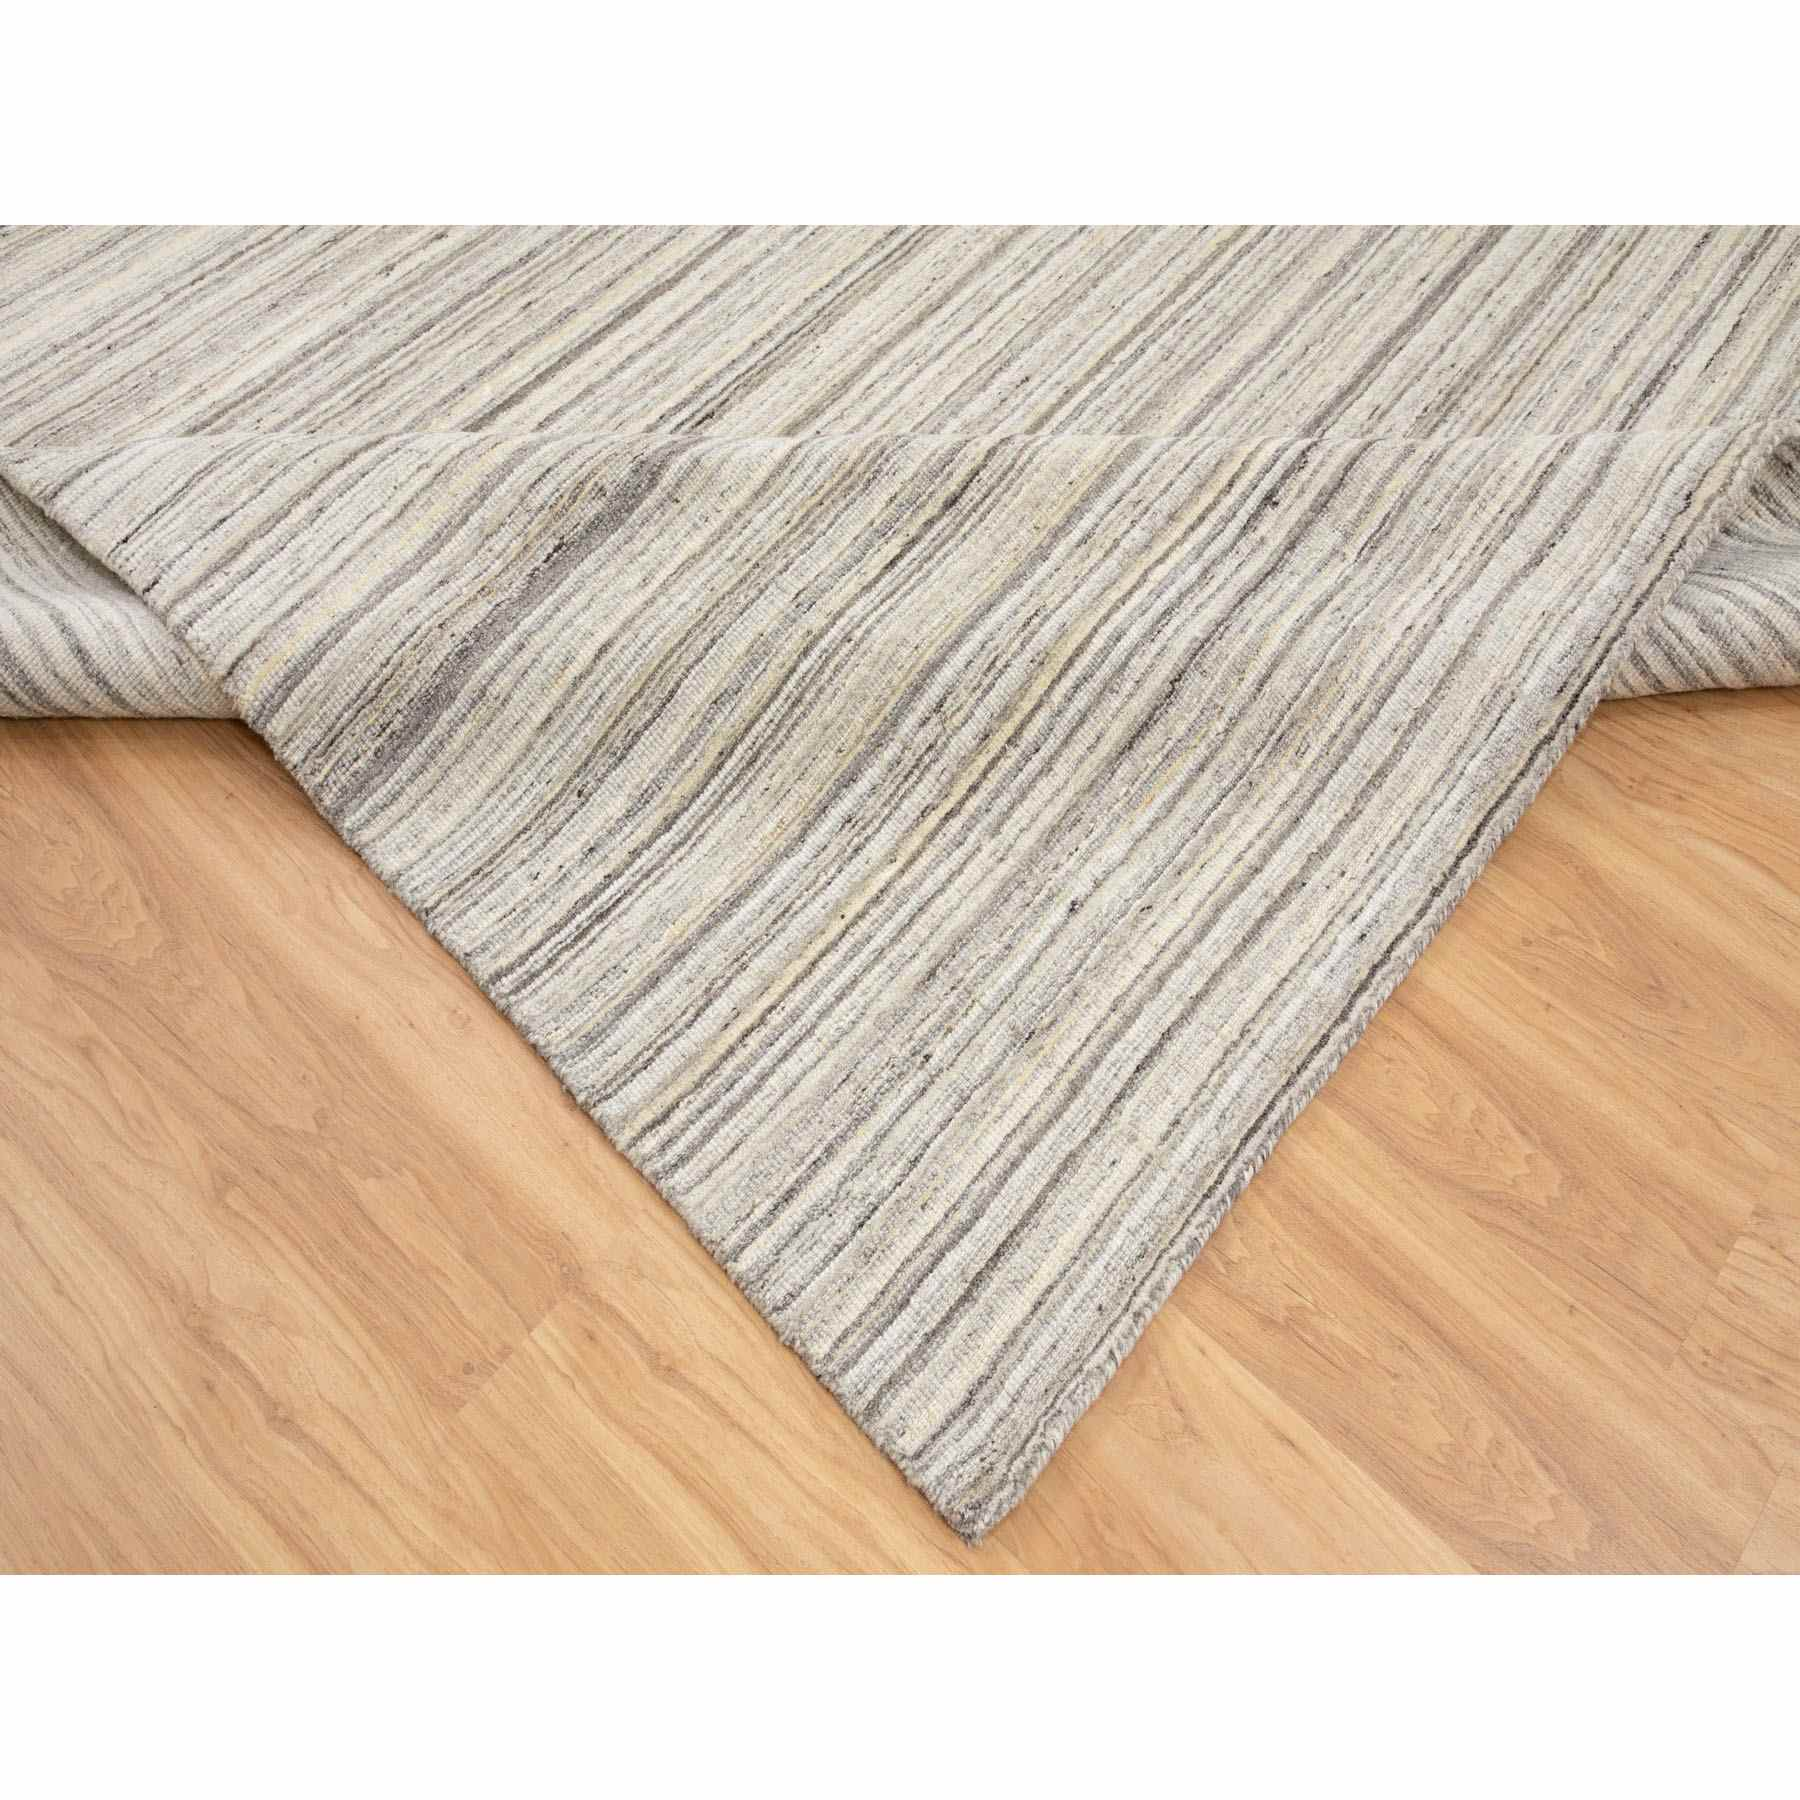 Modern-and-Contemporary-Hand-Loomed-Rug-291920